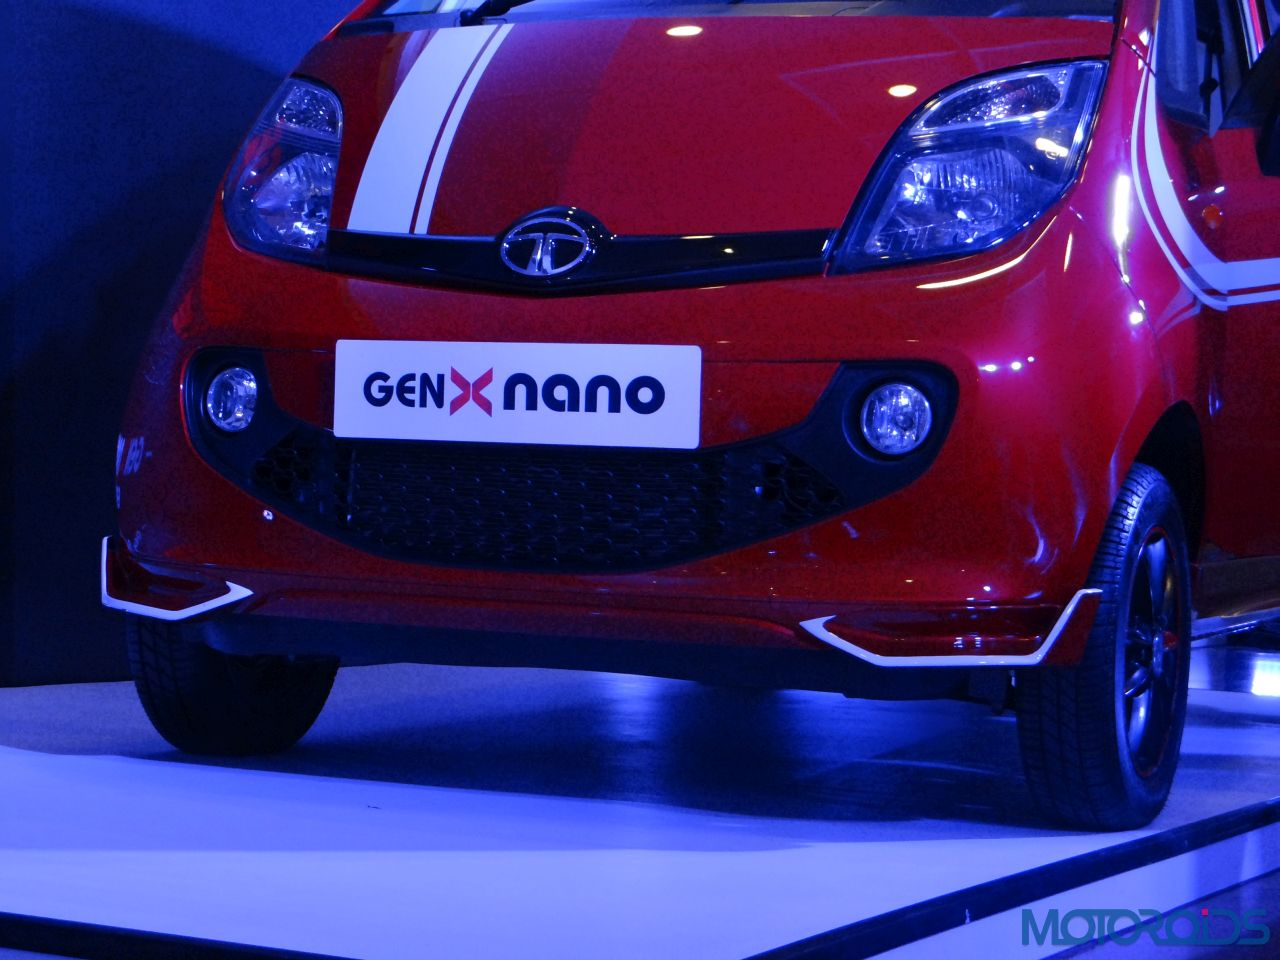 Tata Genx Nano: Report And Images : Tata Nano GenX Launch And